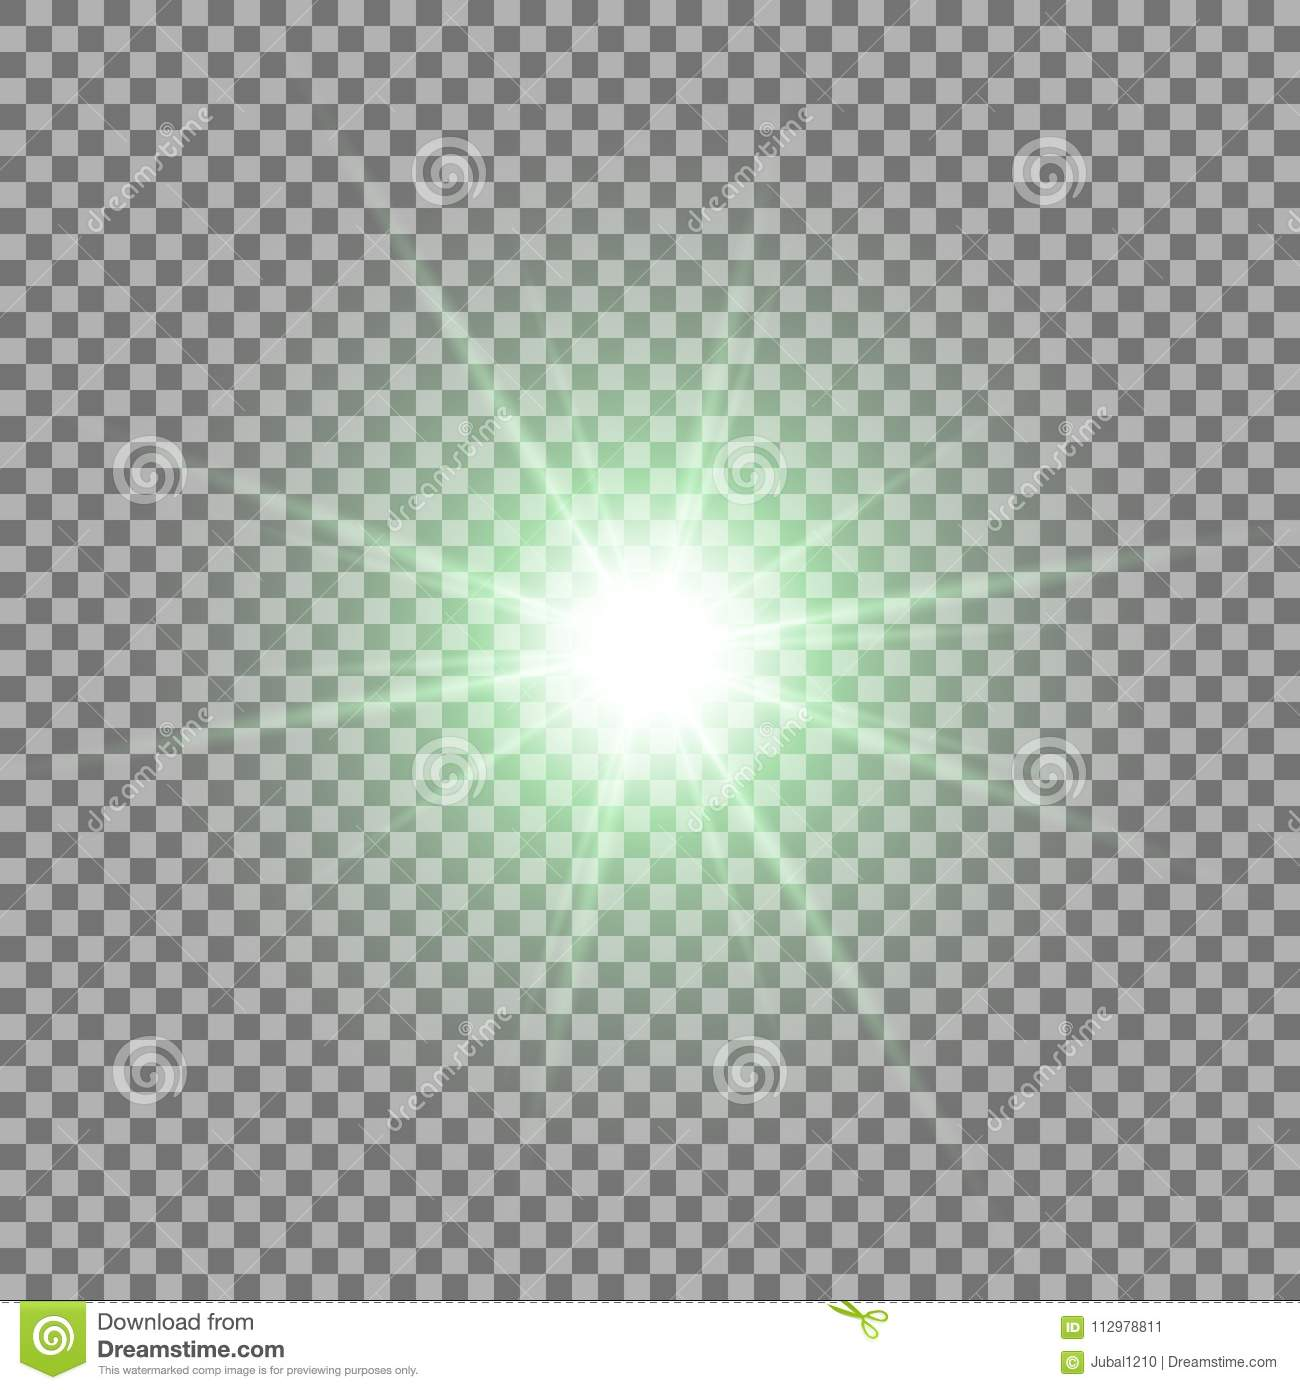 Shining star on transparent background, green color